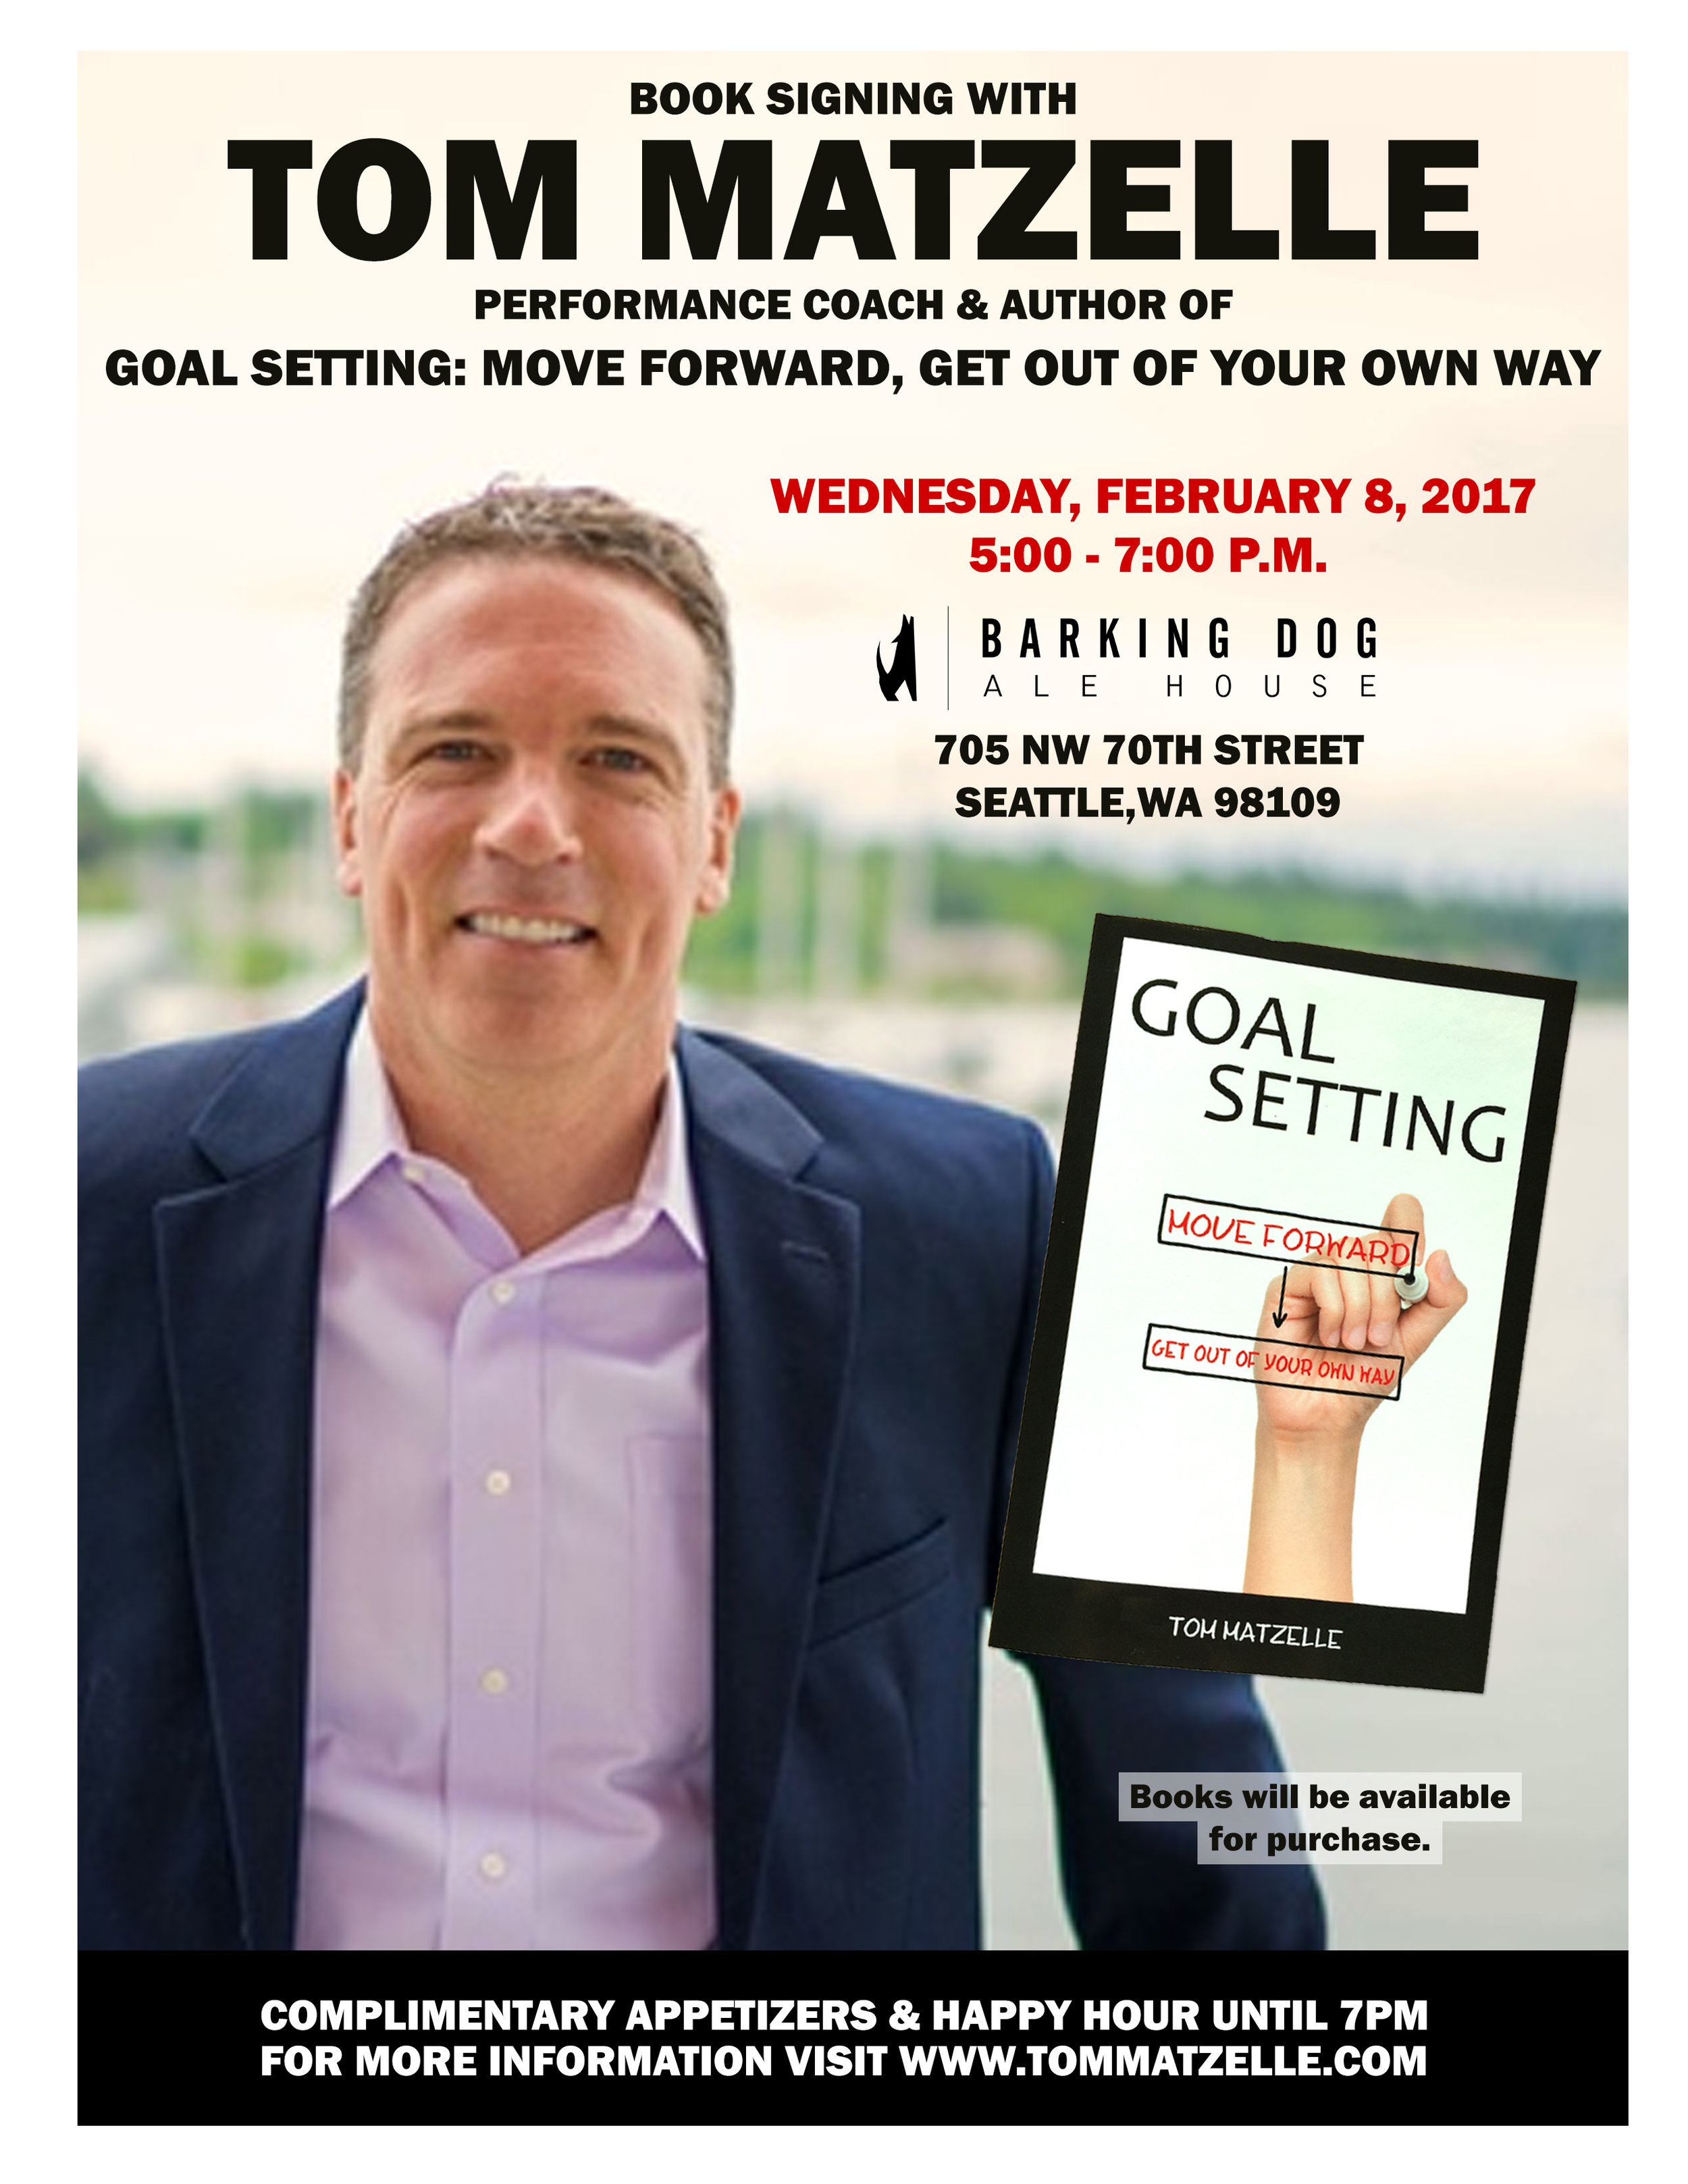 Goal Setting: Move Forward, Get Out of Your Own Way - This was for my book signing at the Barking Dog Alehouse in Seattle. Great event and a ton of fun.